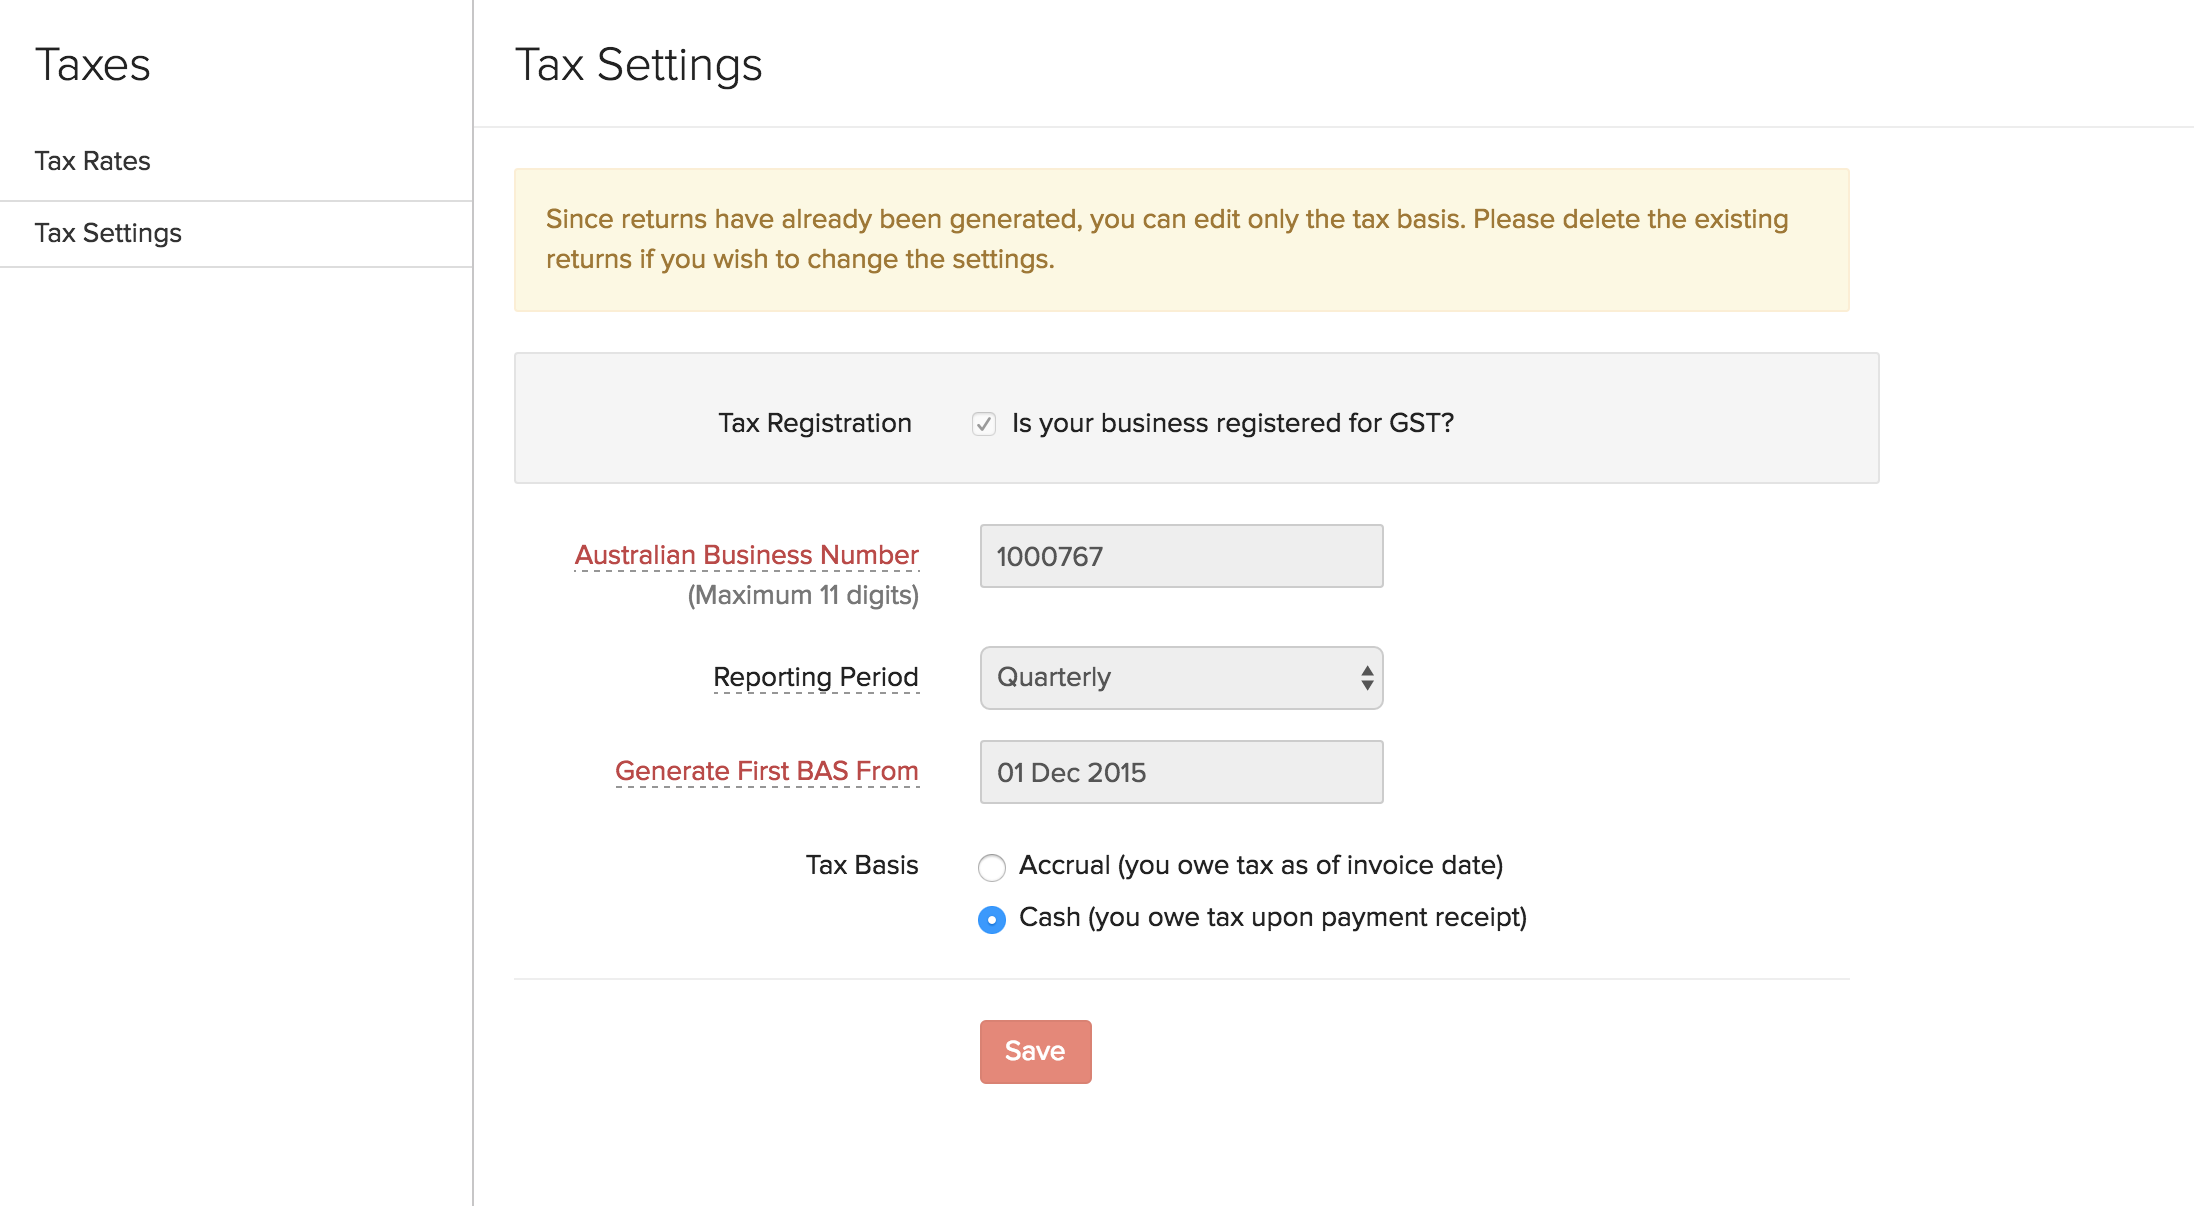 Tax Basis in Settings